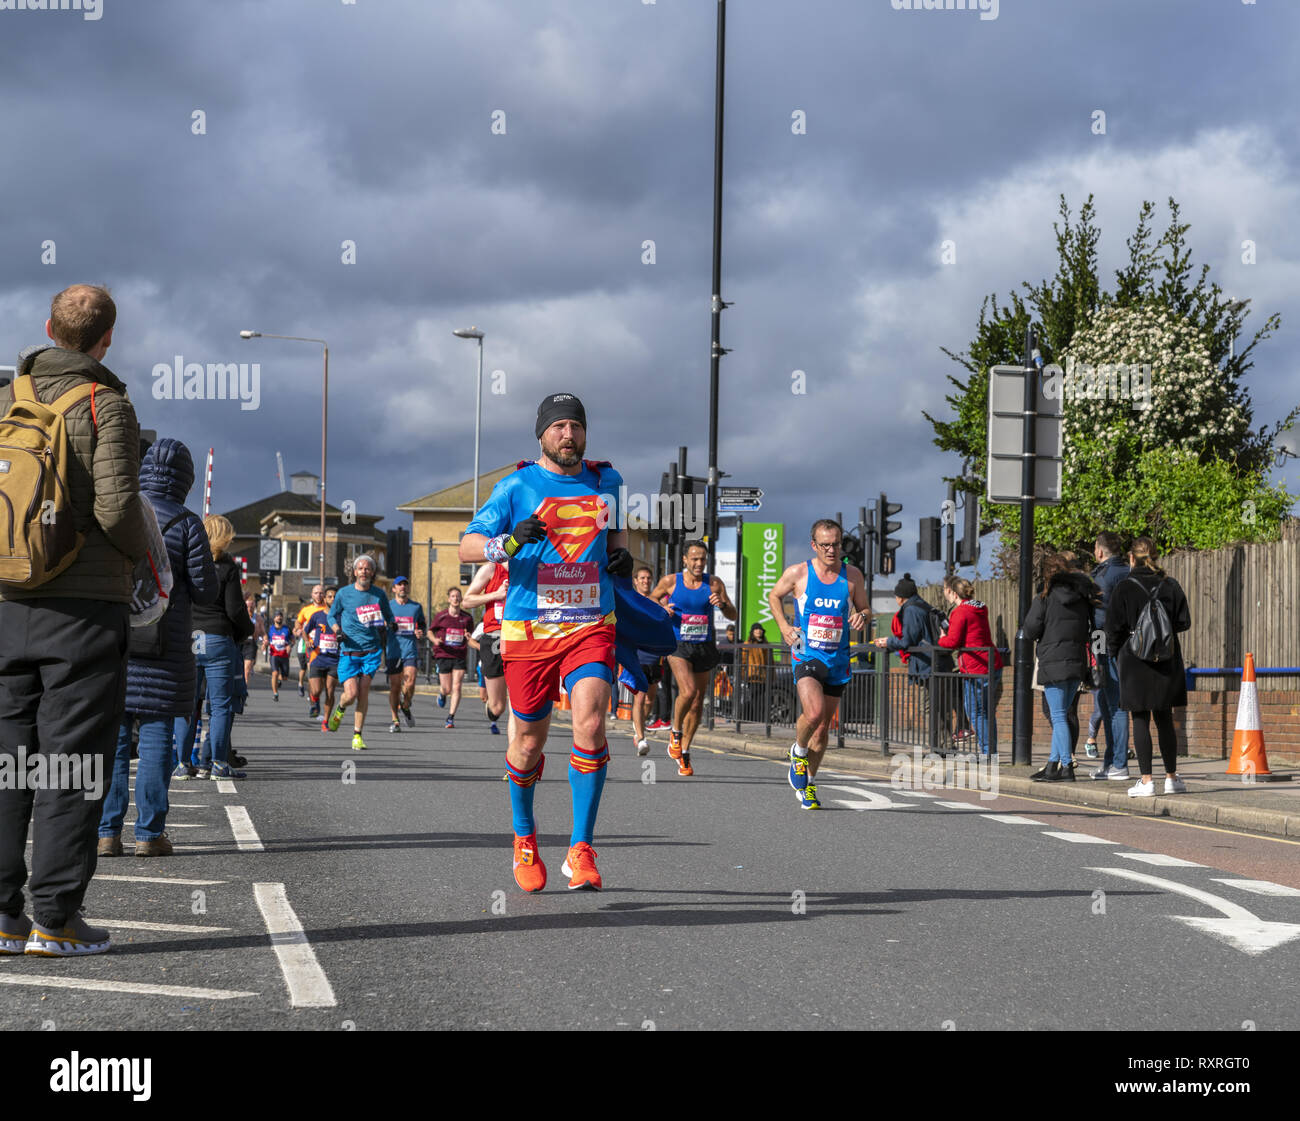 London, UK. 10th Mar 2019. An athletic man dressed in Superman costume competes in fundraising charity event Vitality Big Half marathon. Credit: AndKa/Alamy Live News Stock Photo